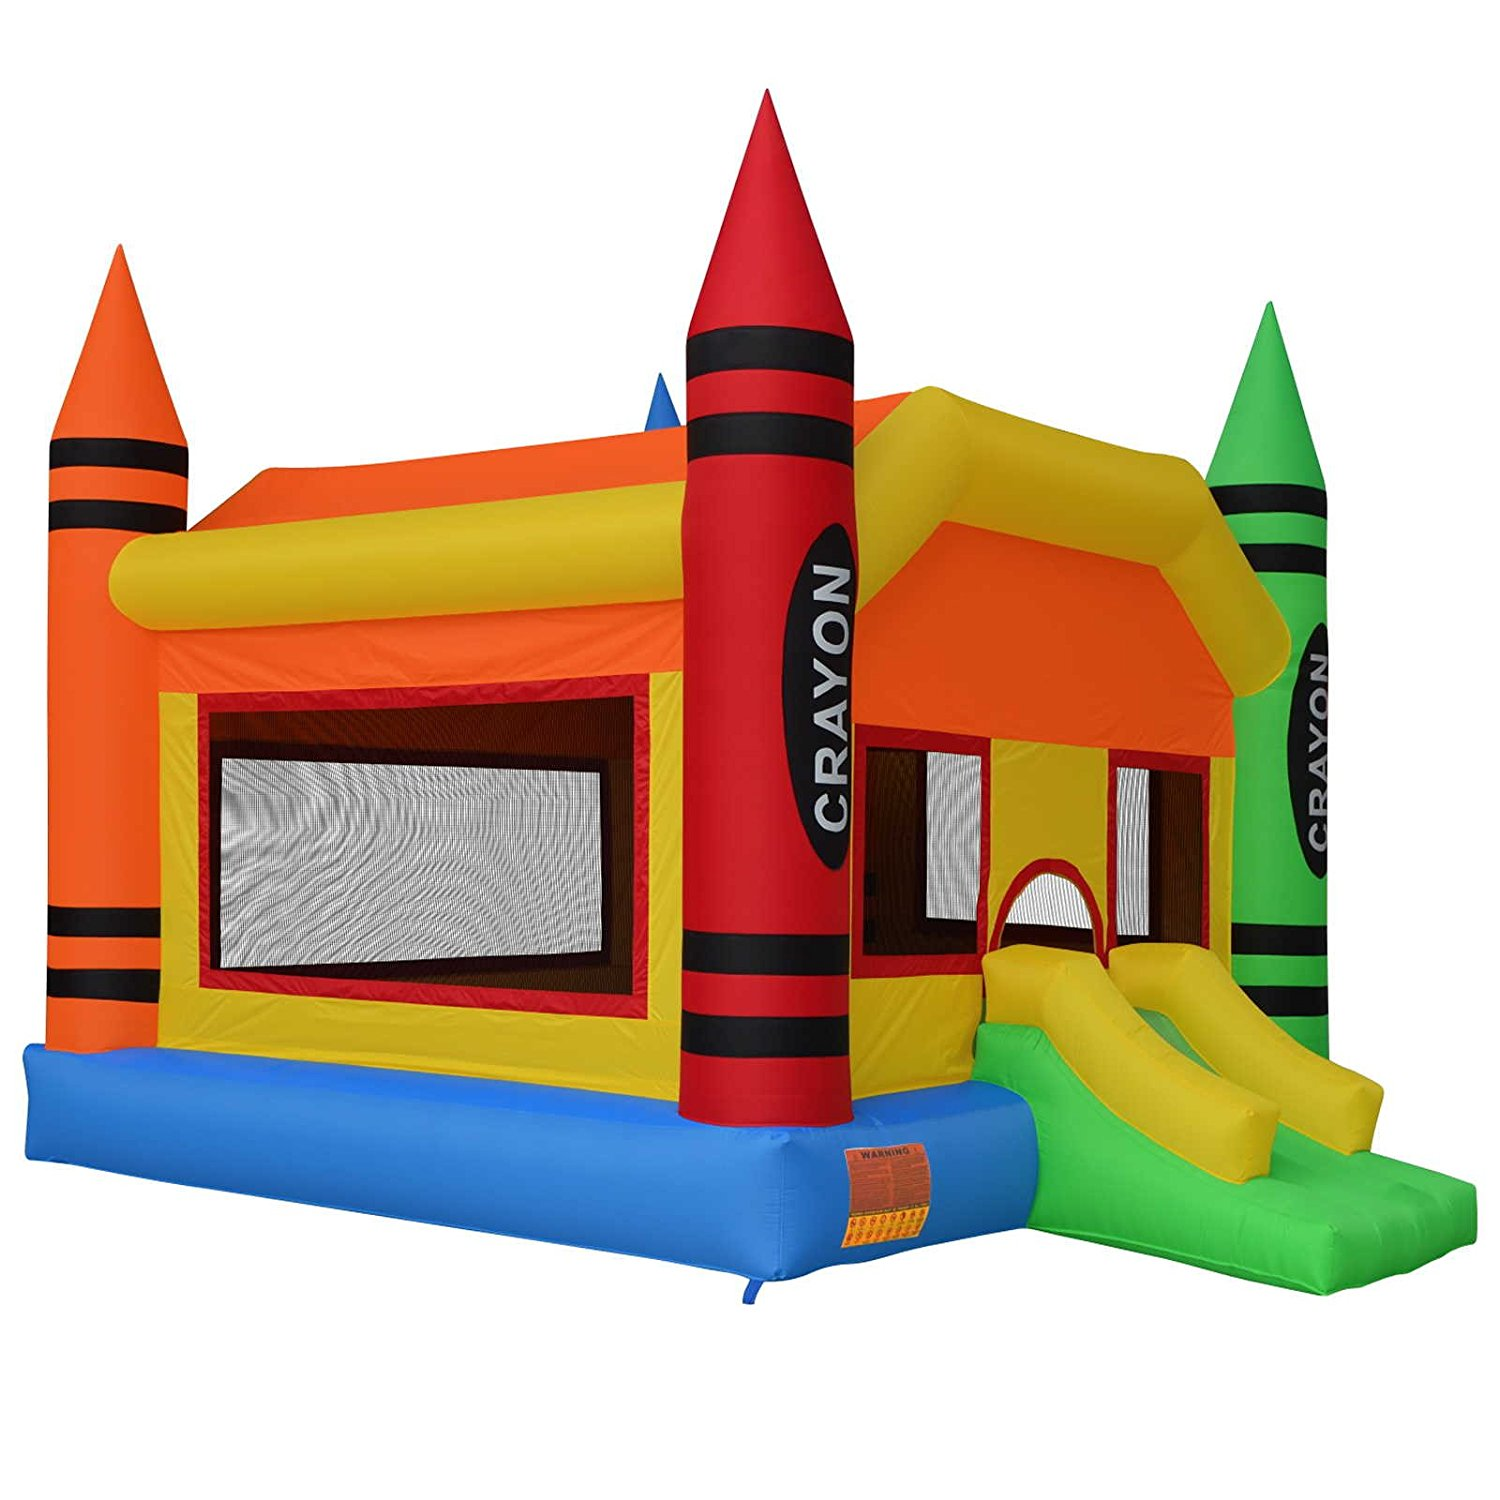 1500x1500 Cloud 9 The Crayon Bounce House